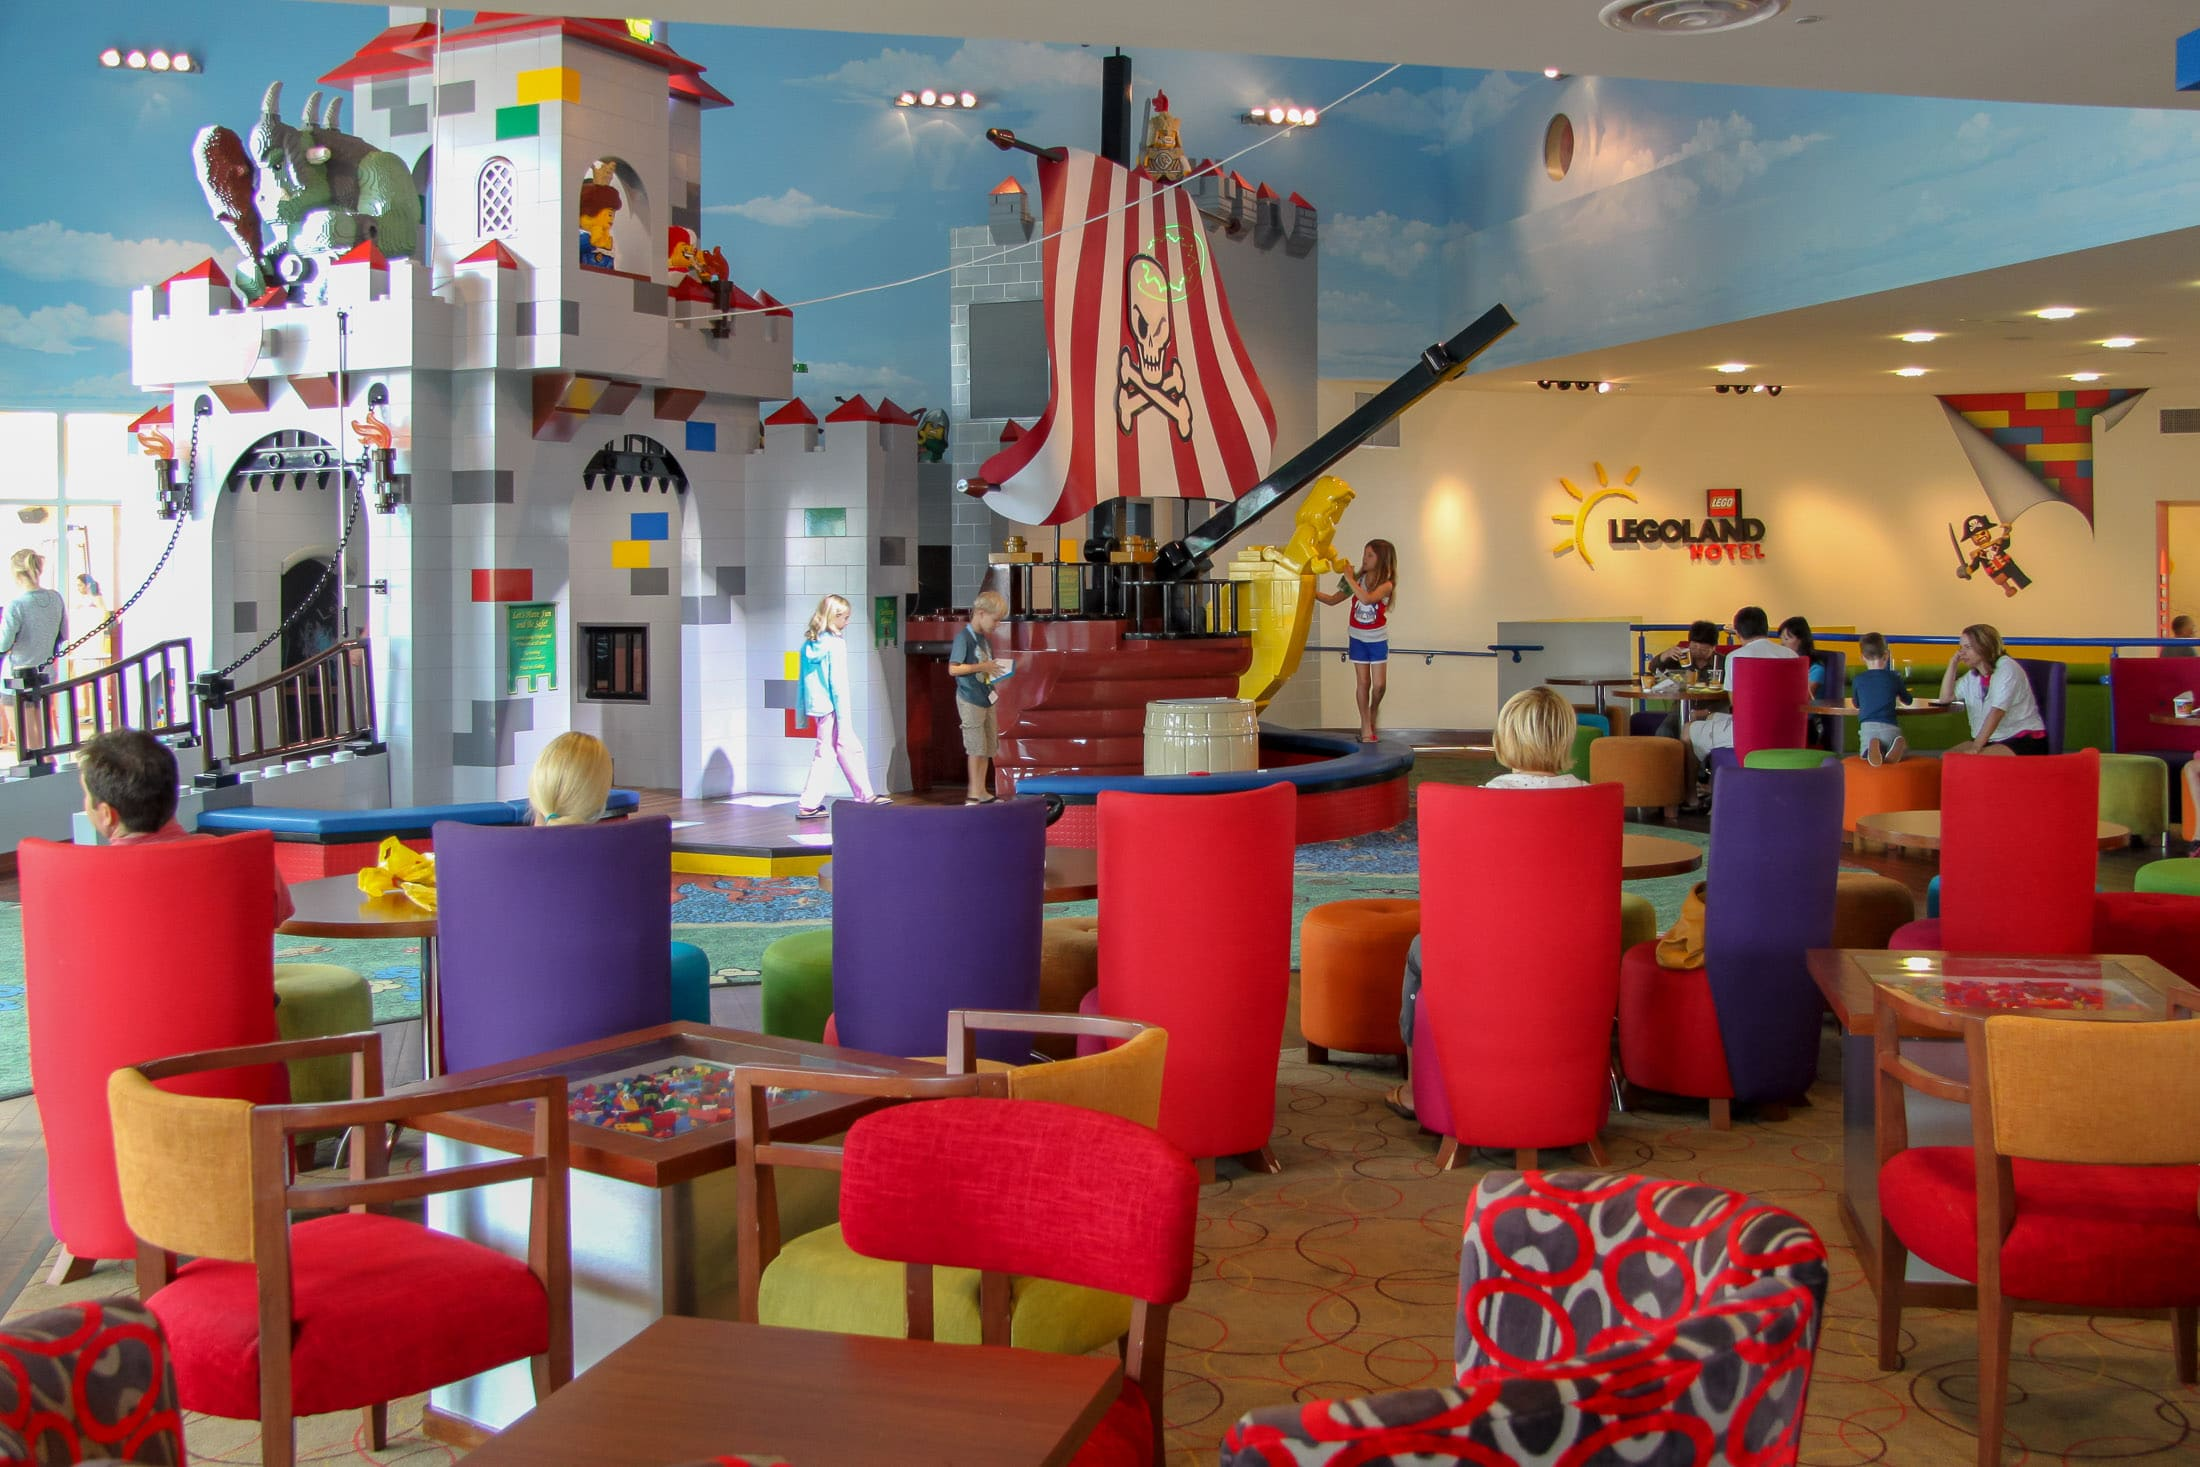 LEGO pits and play structure at LEGOLAND Hotel